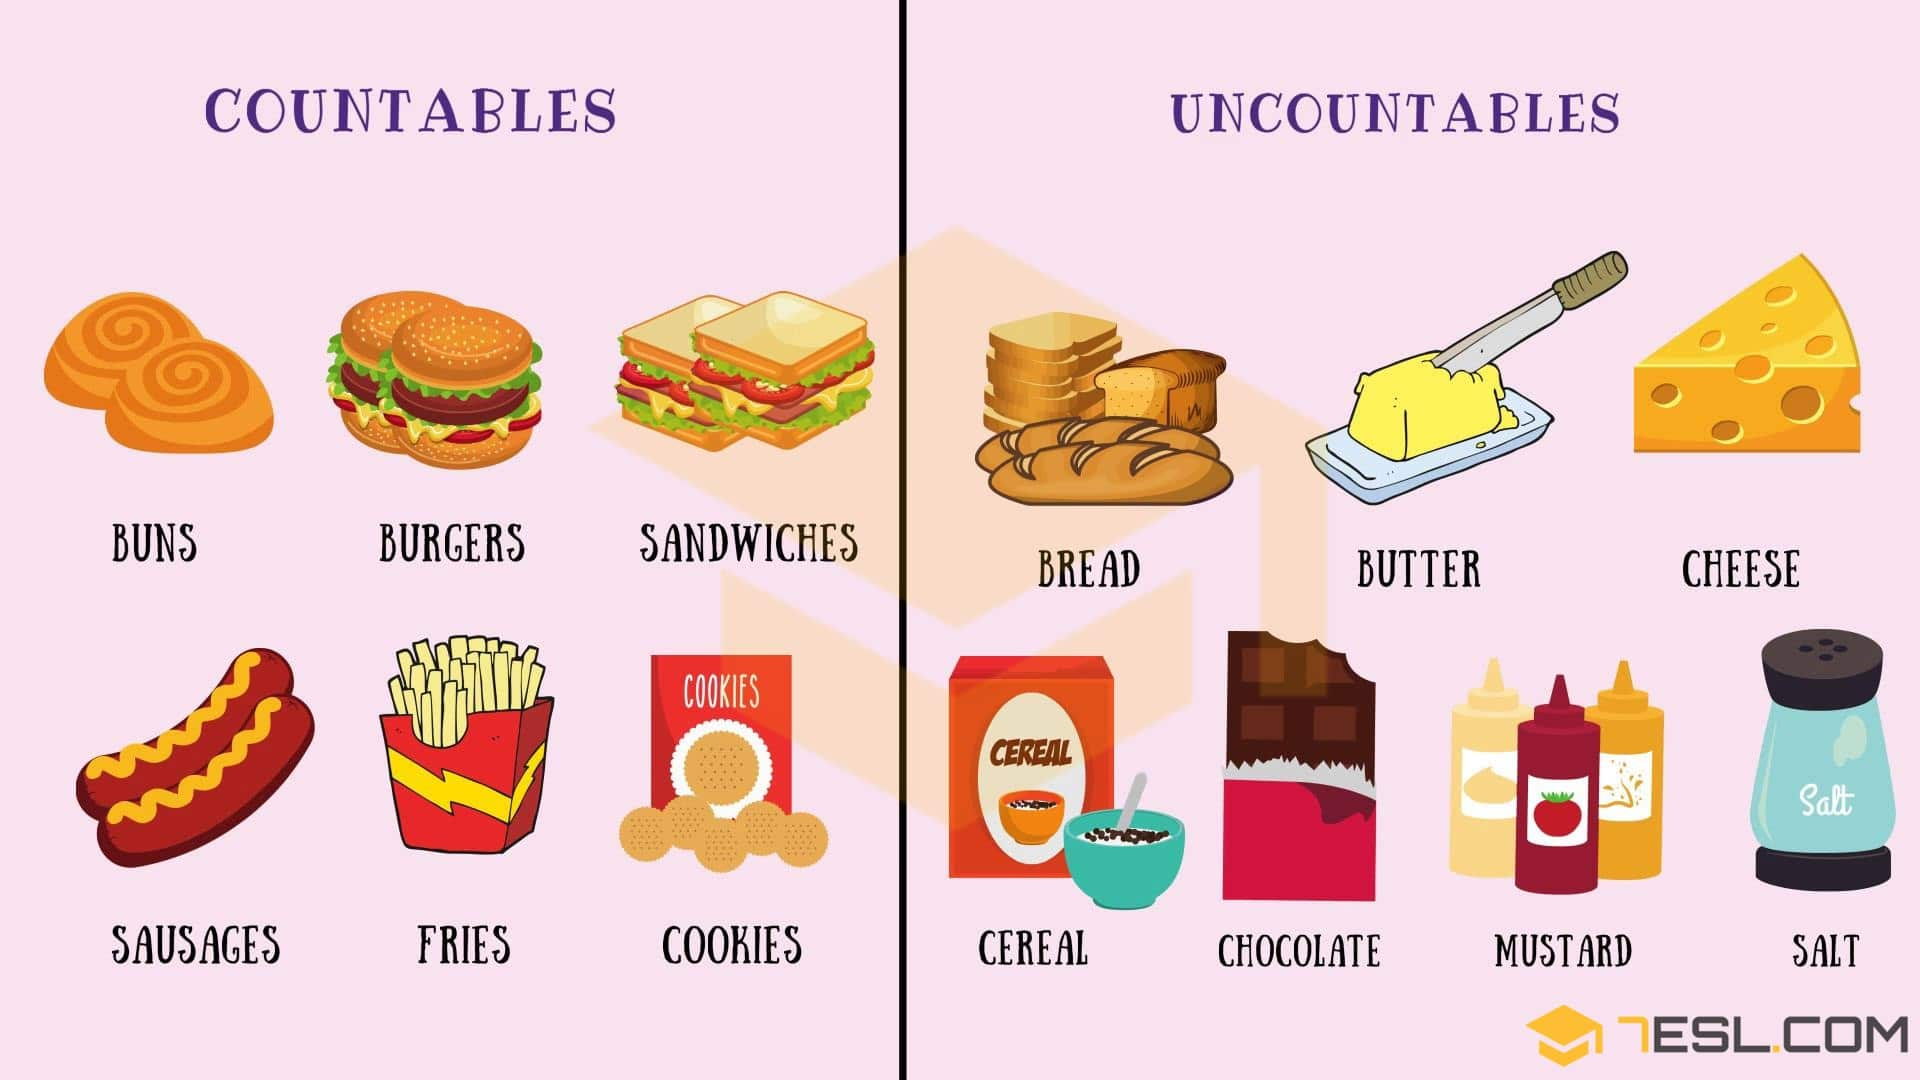 Countable and Uncountable Food: Helpful List & Examples